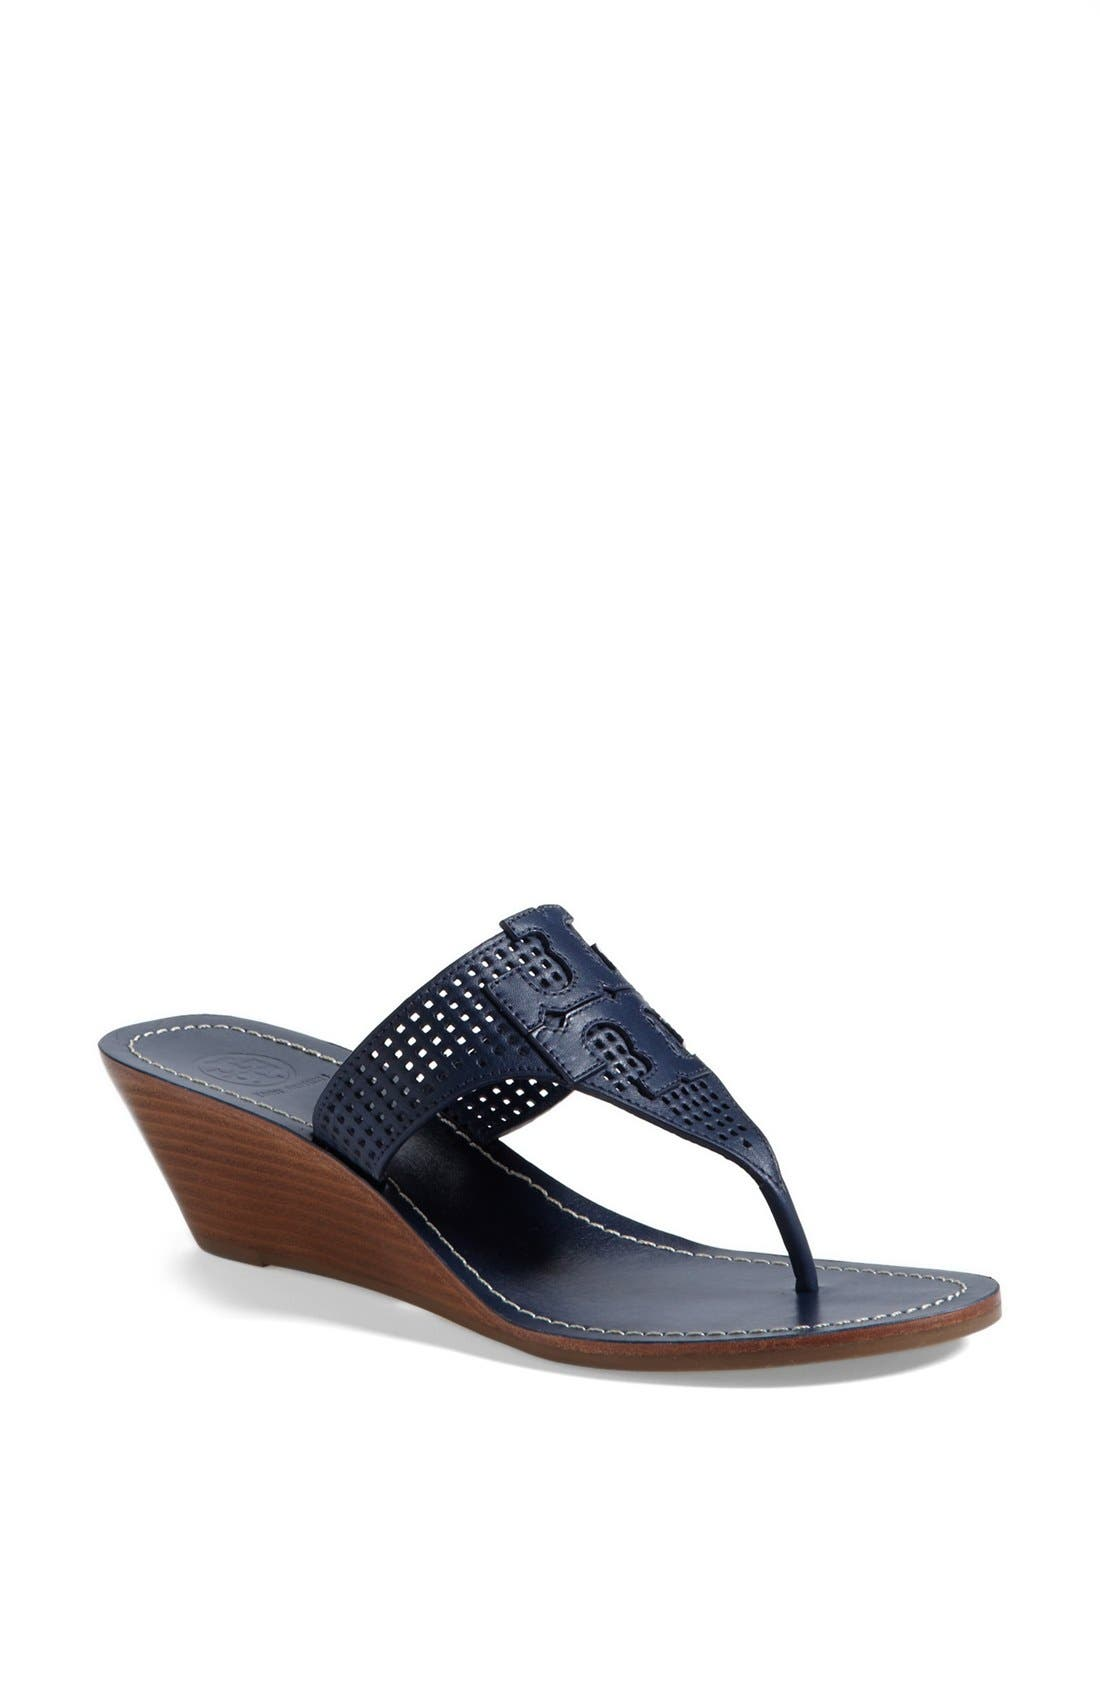 Main Image - Tory Burch 'Mcfee' Wedge Sandal (Online Only)